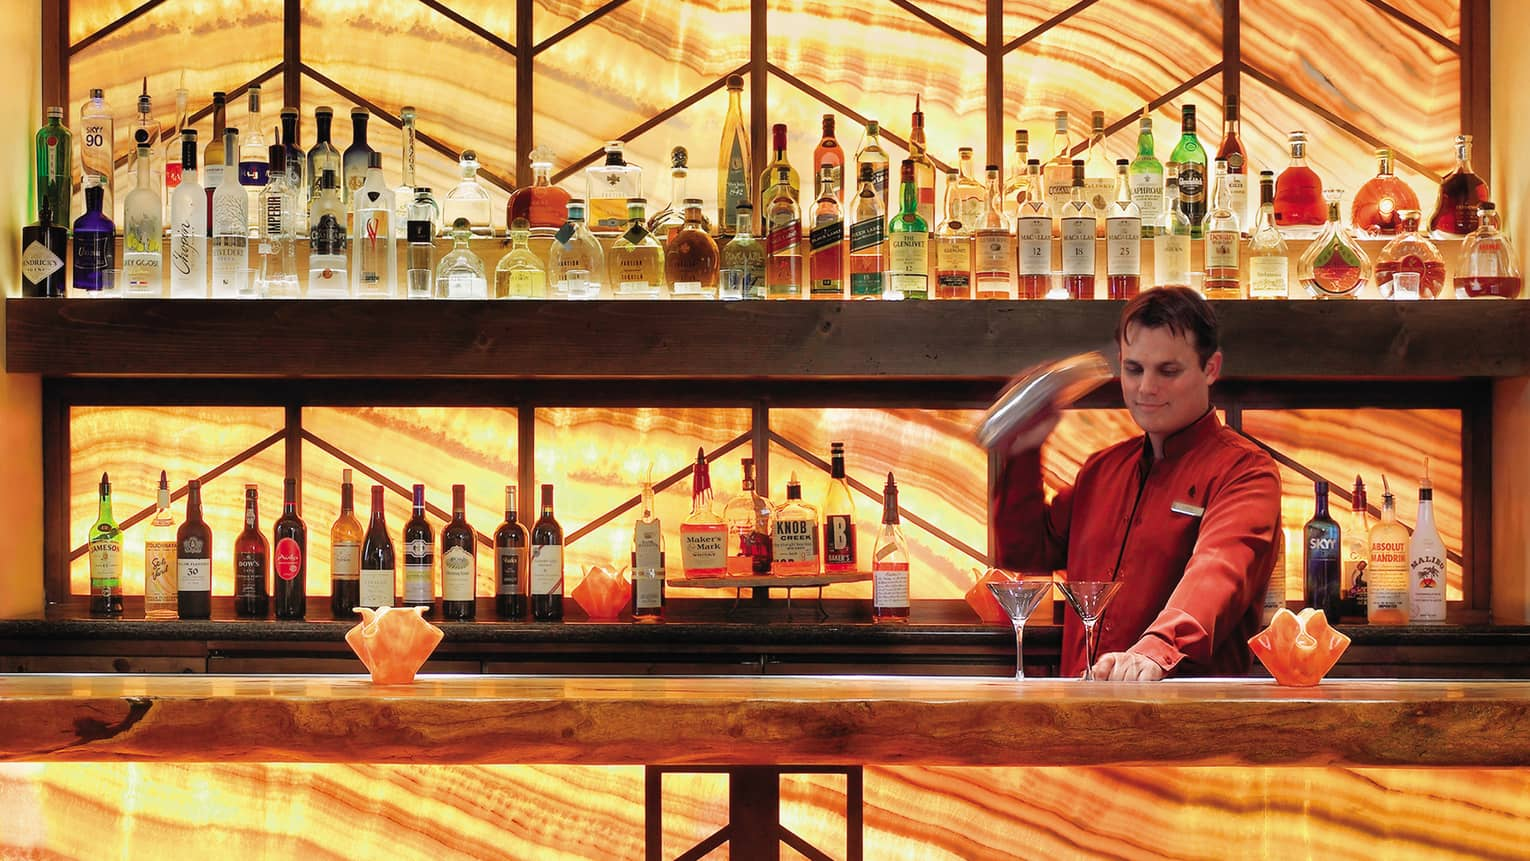 Bartender in red jacket with cocktail shaker in front of two martini glasses on bar with illuminated wood grain